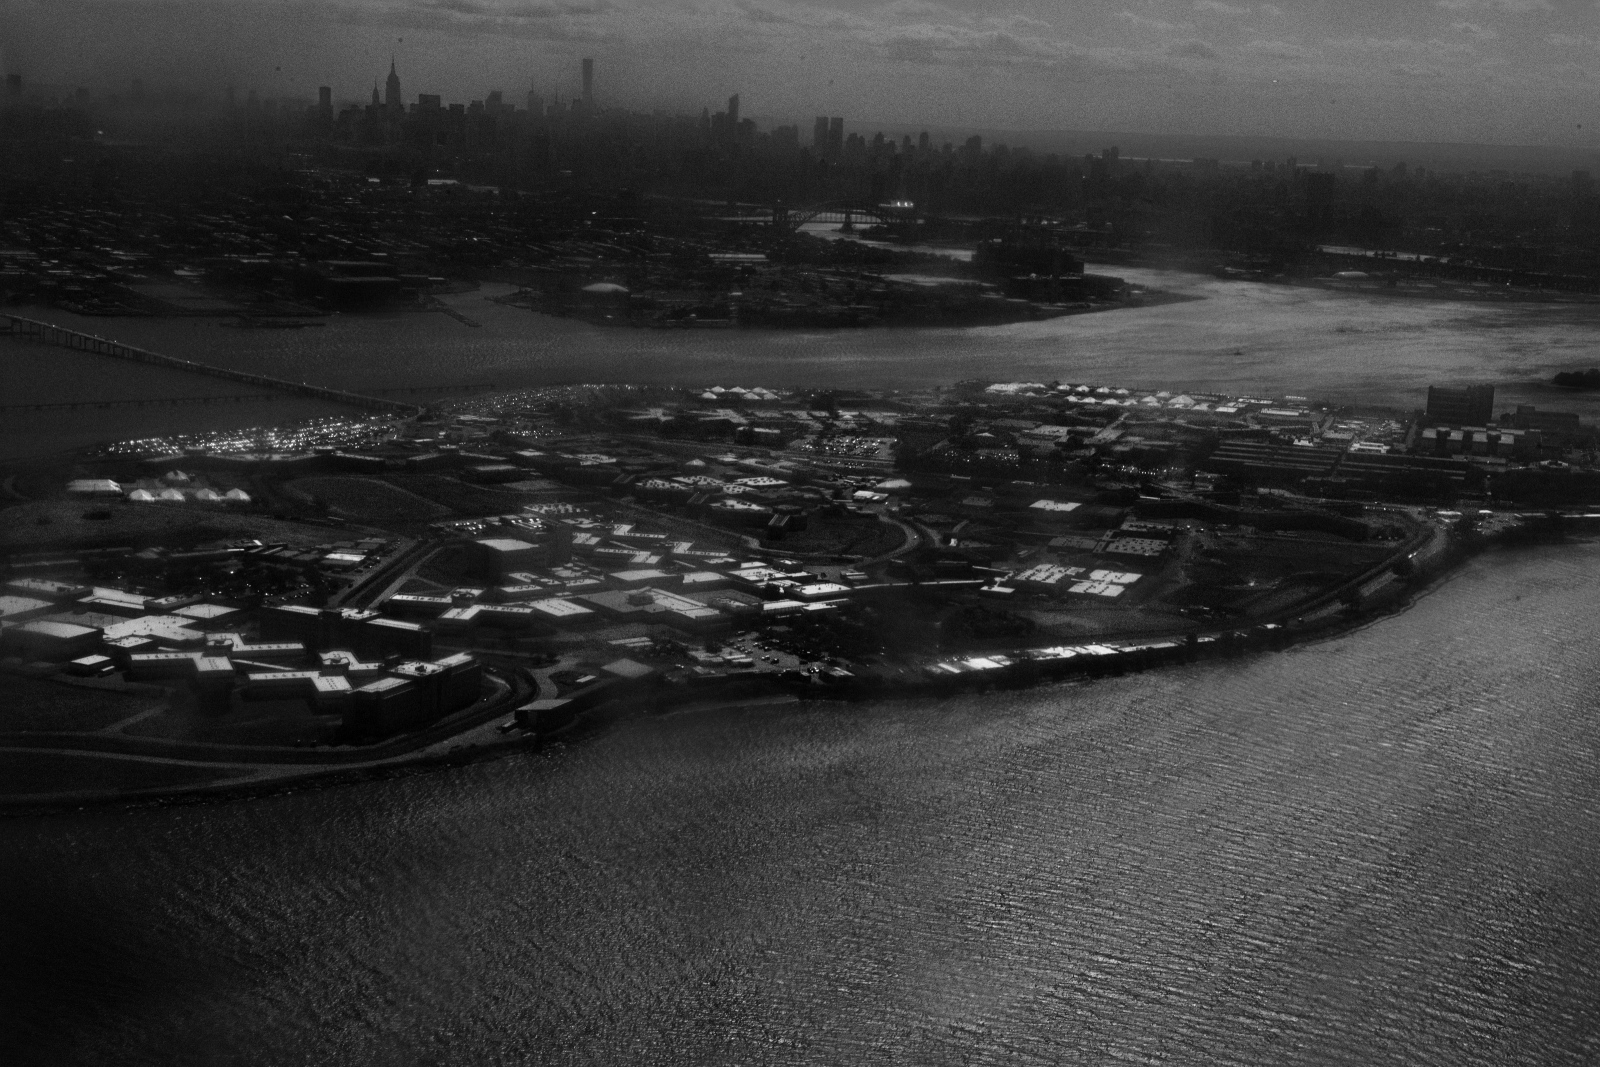 Rikers Island as seen from a plane that departed from La Guardia Airport. A clear view of the island is hard to get from anywhere in the city but thousands of people who land and depart each day from La Guardia get a clear overview of it many times without knowing what the island is. June 9th, 2016.